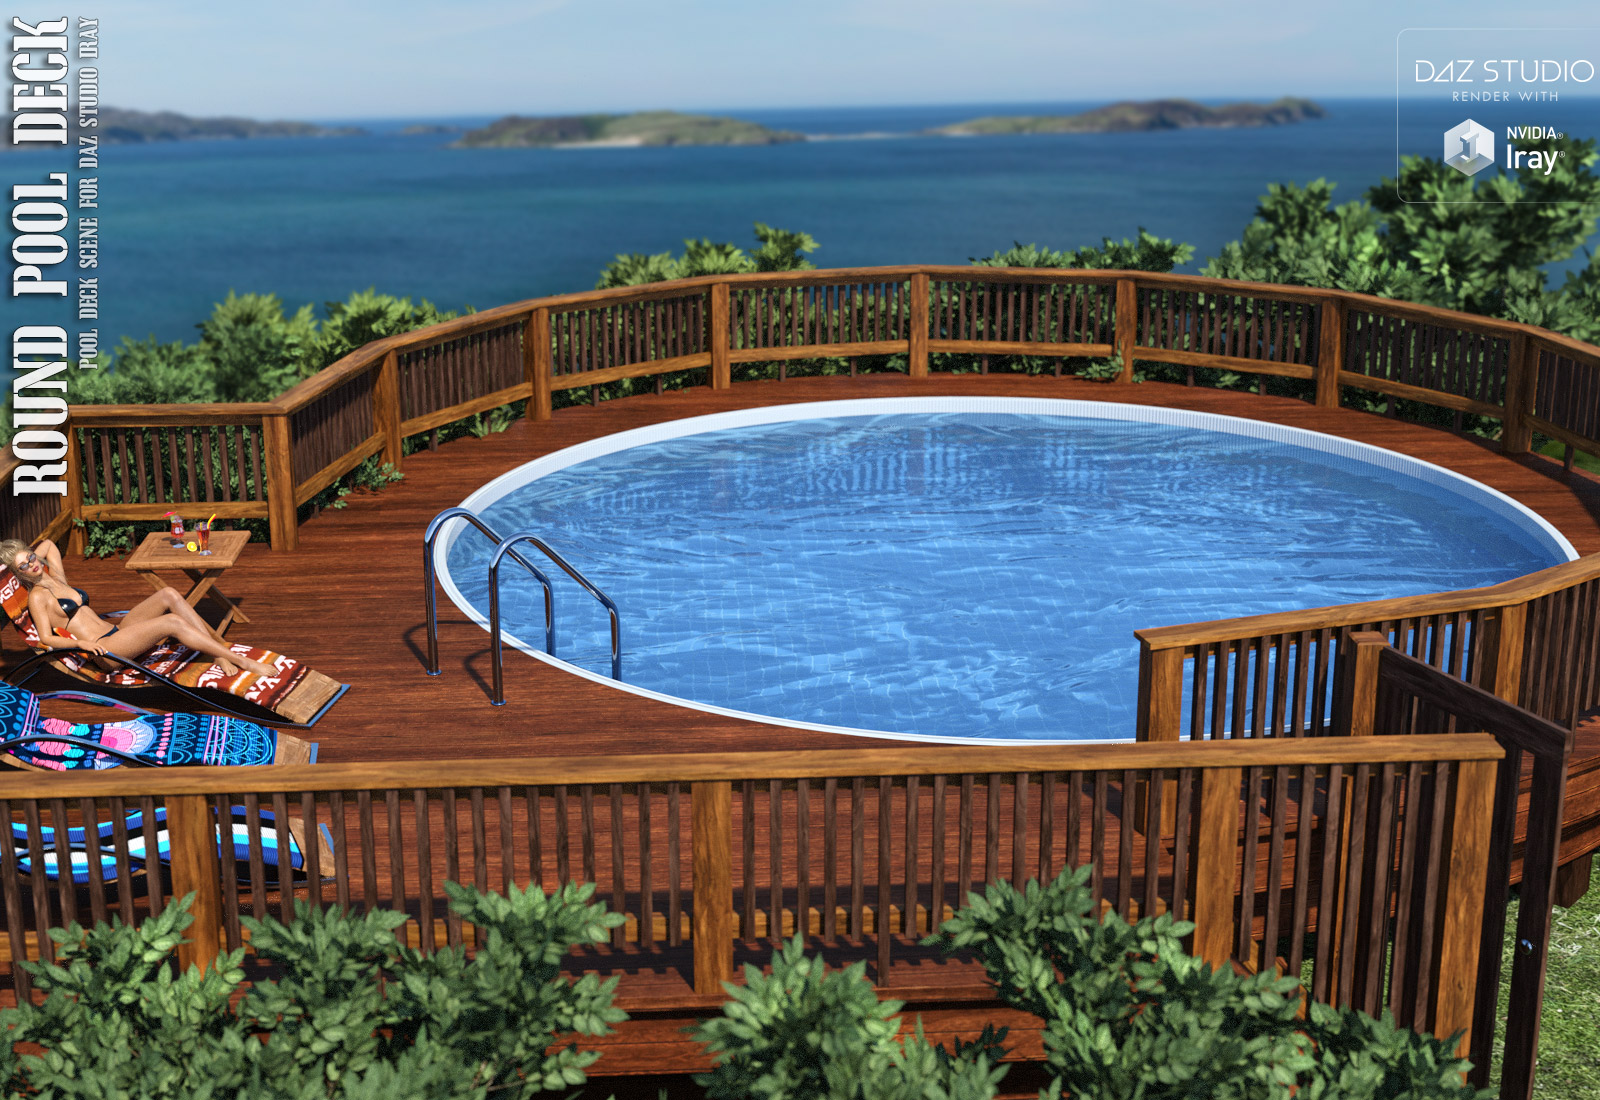 Round Pool Deck - Extended License